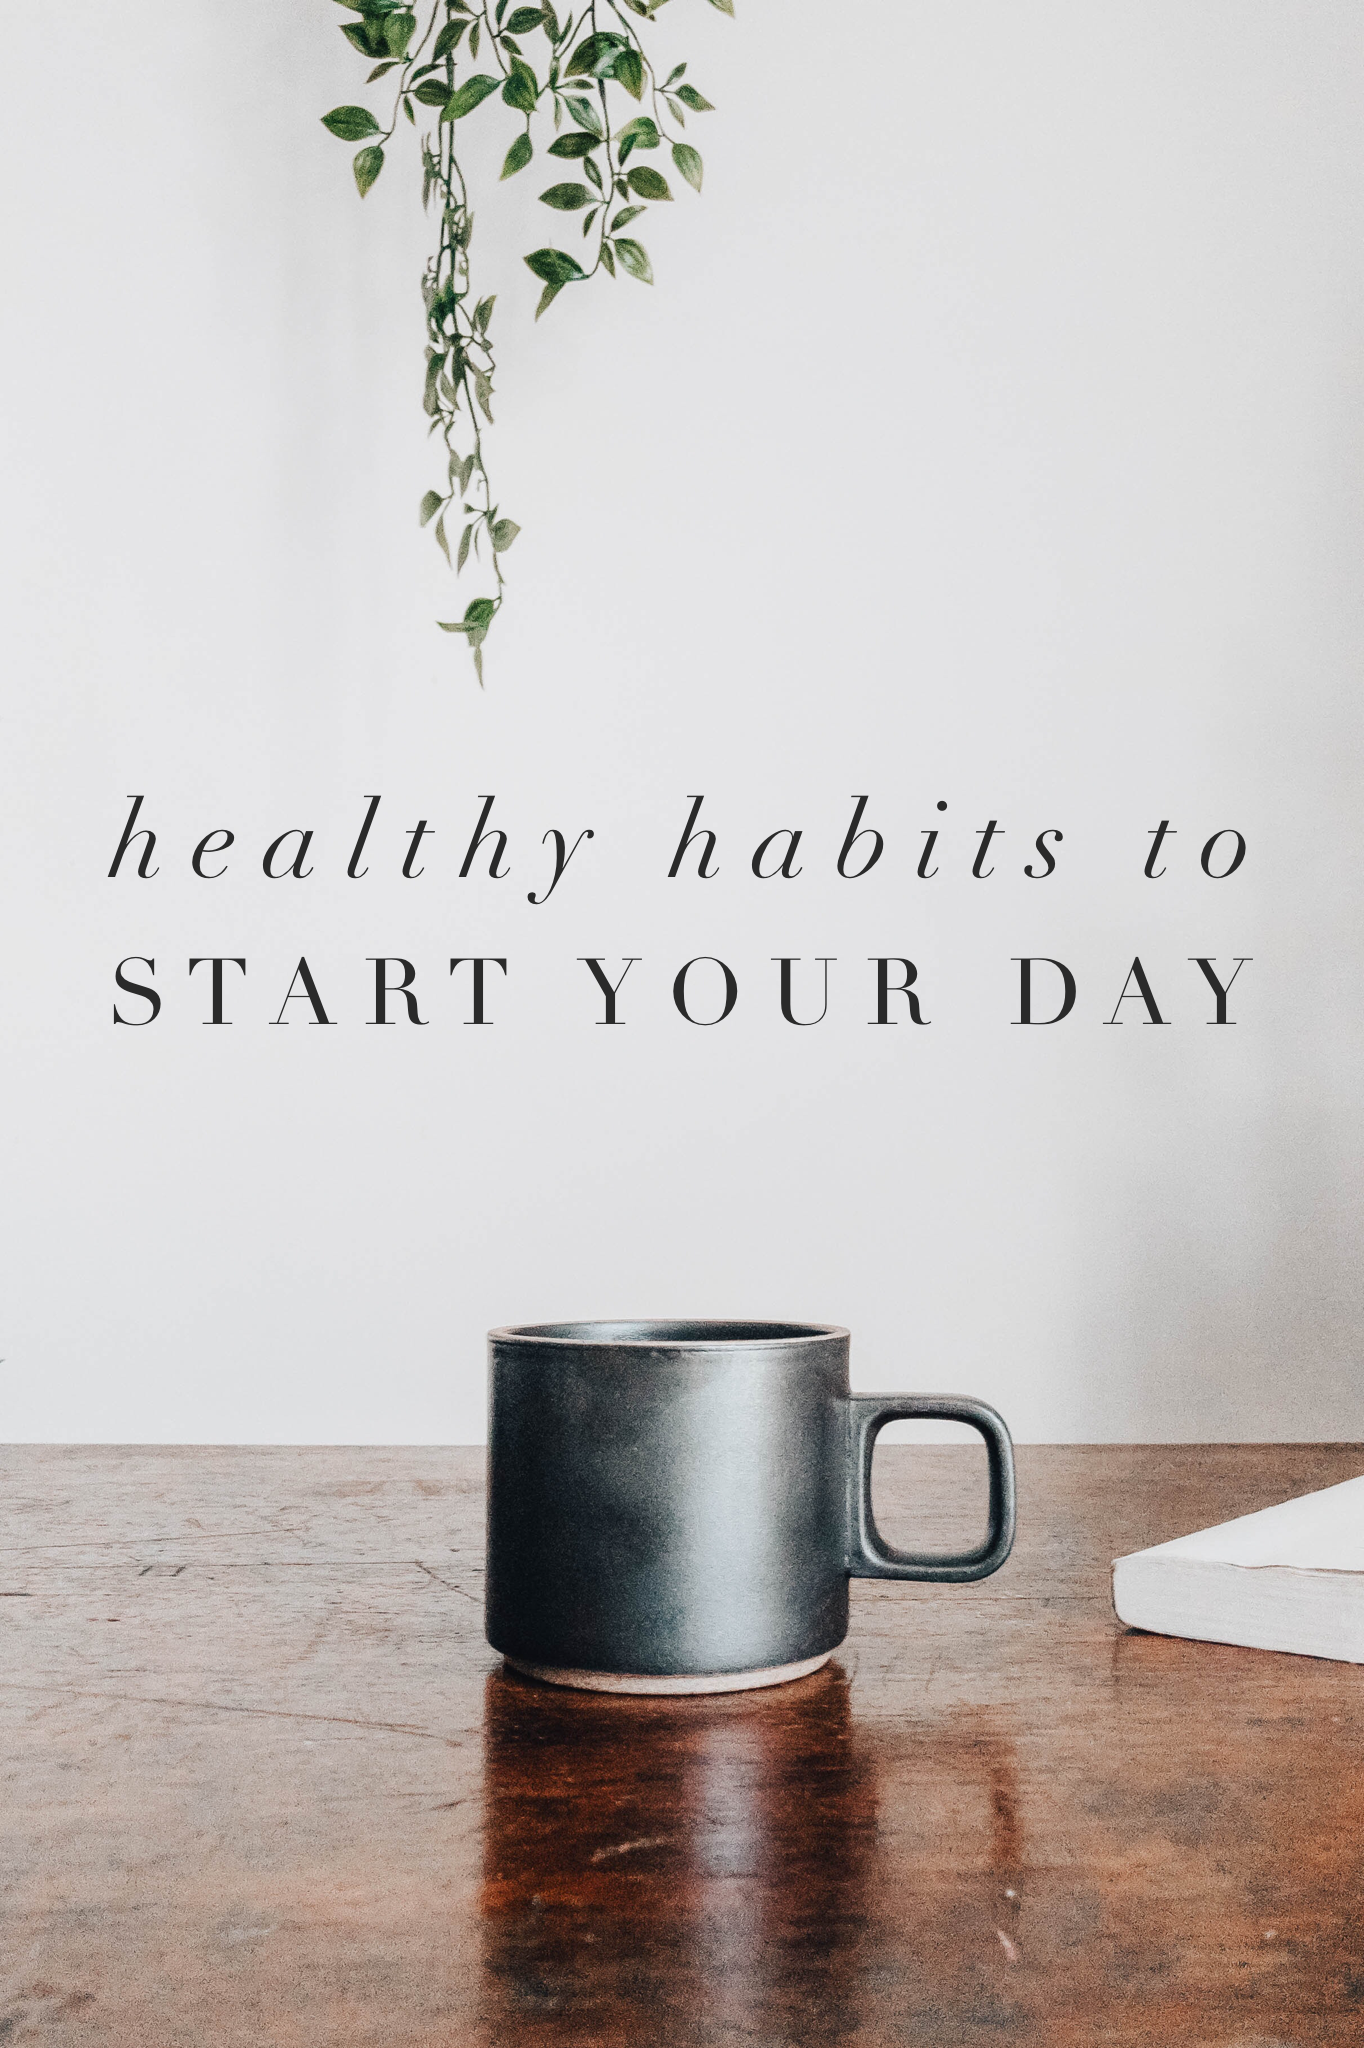 Healthy Habits to Start Your Day. Creating a healthy morning routine sets your day up for success. Lots of successful and happy people create simple morning routines that include meditation, drinking water, and setting positive intentions. #selfcare #wellness